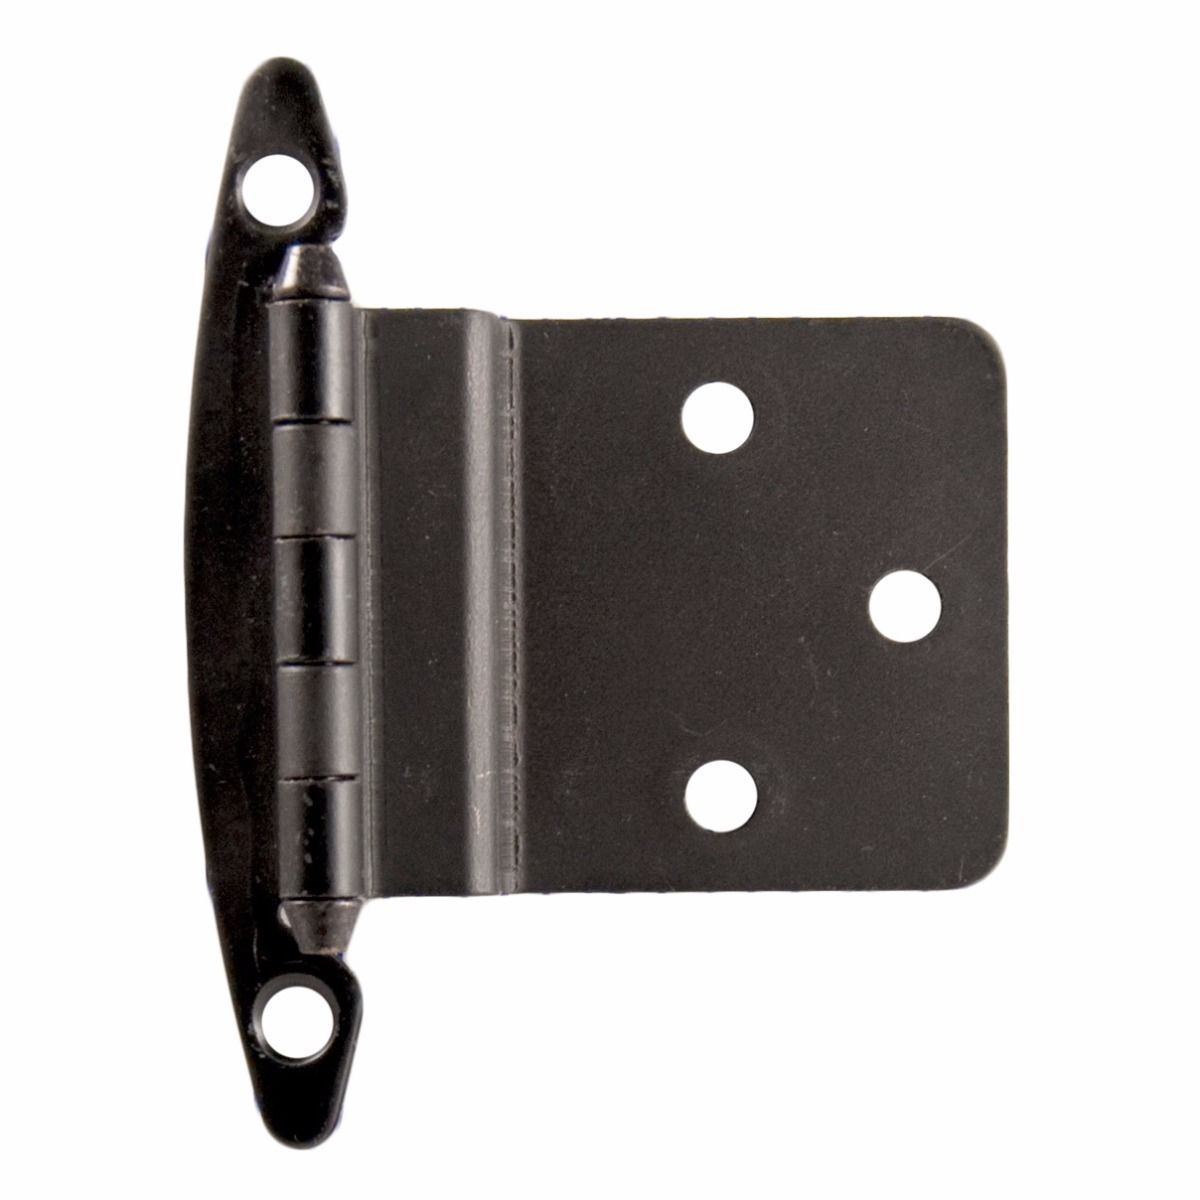 5 8 Partial Inset Cabinet Hinge Inset Cabinets Inset Cabinet Hinges Hinges For Cabinets